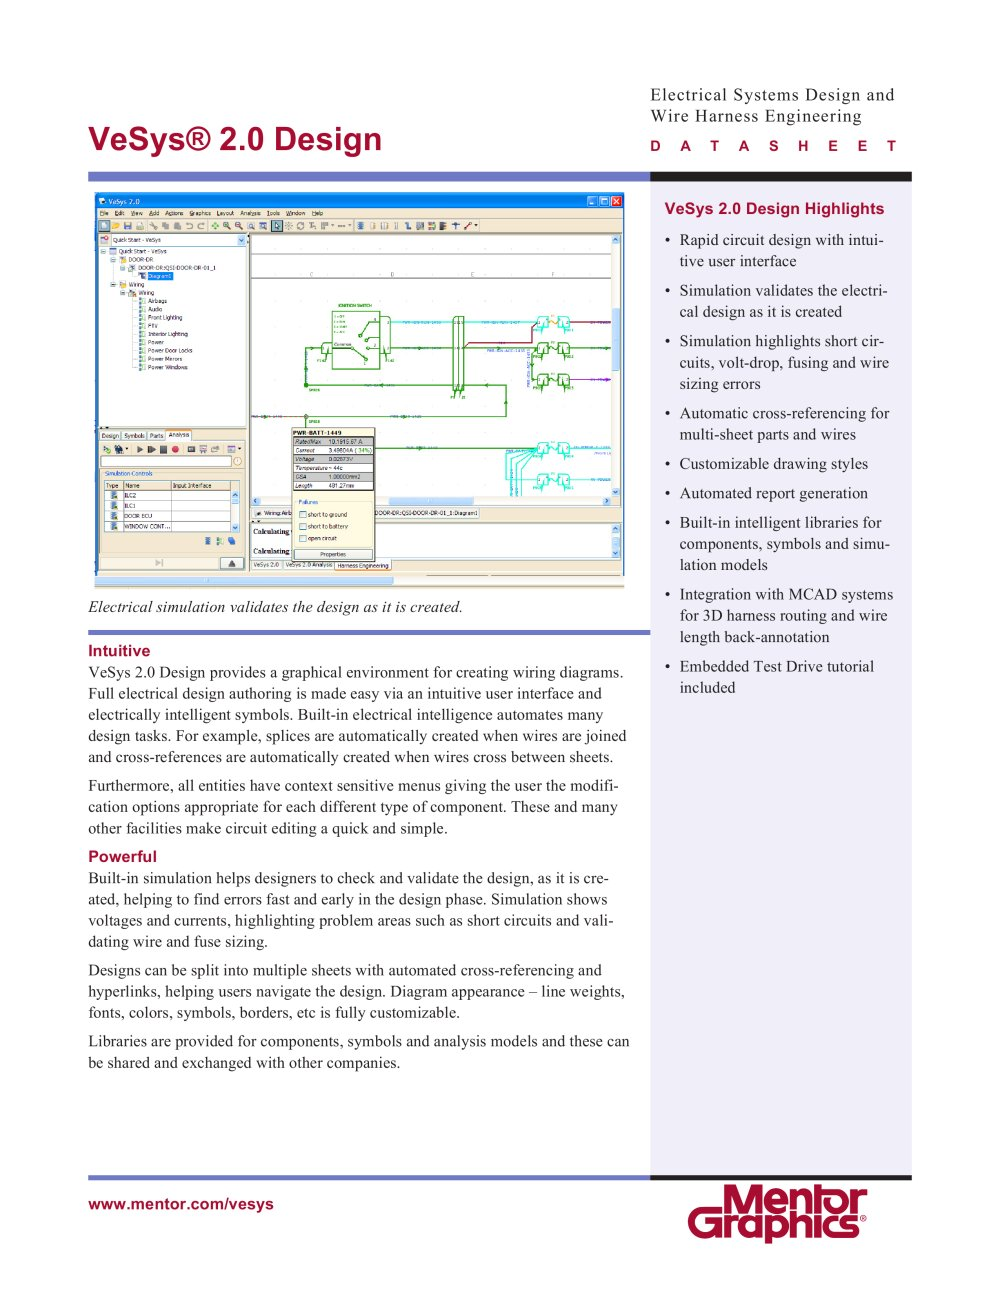 Wiring Harness Simulator Automotive Diagram Fast Images Gallery